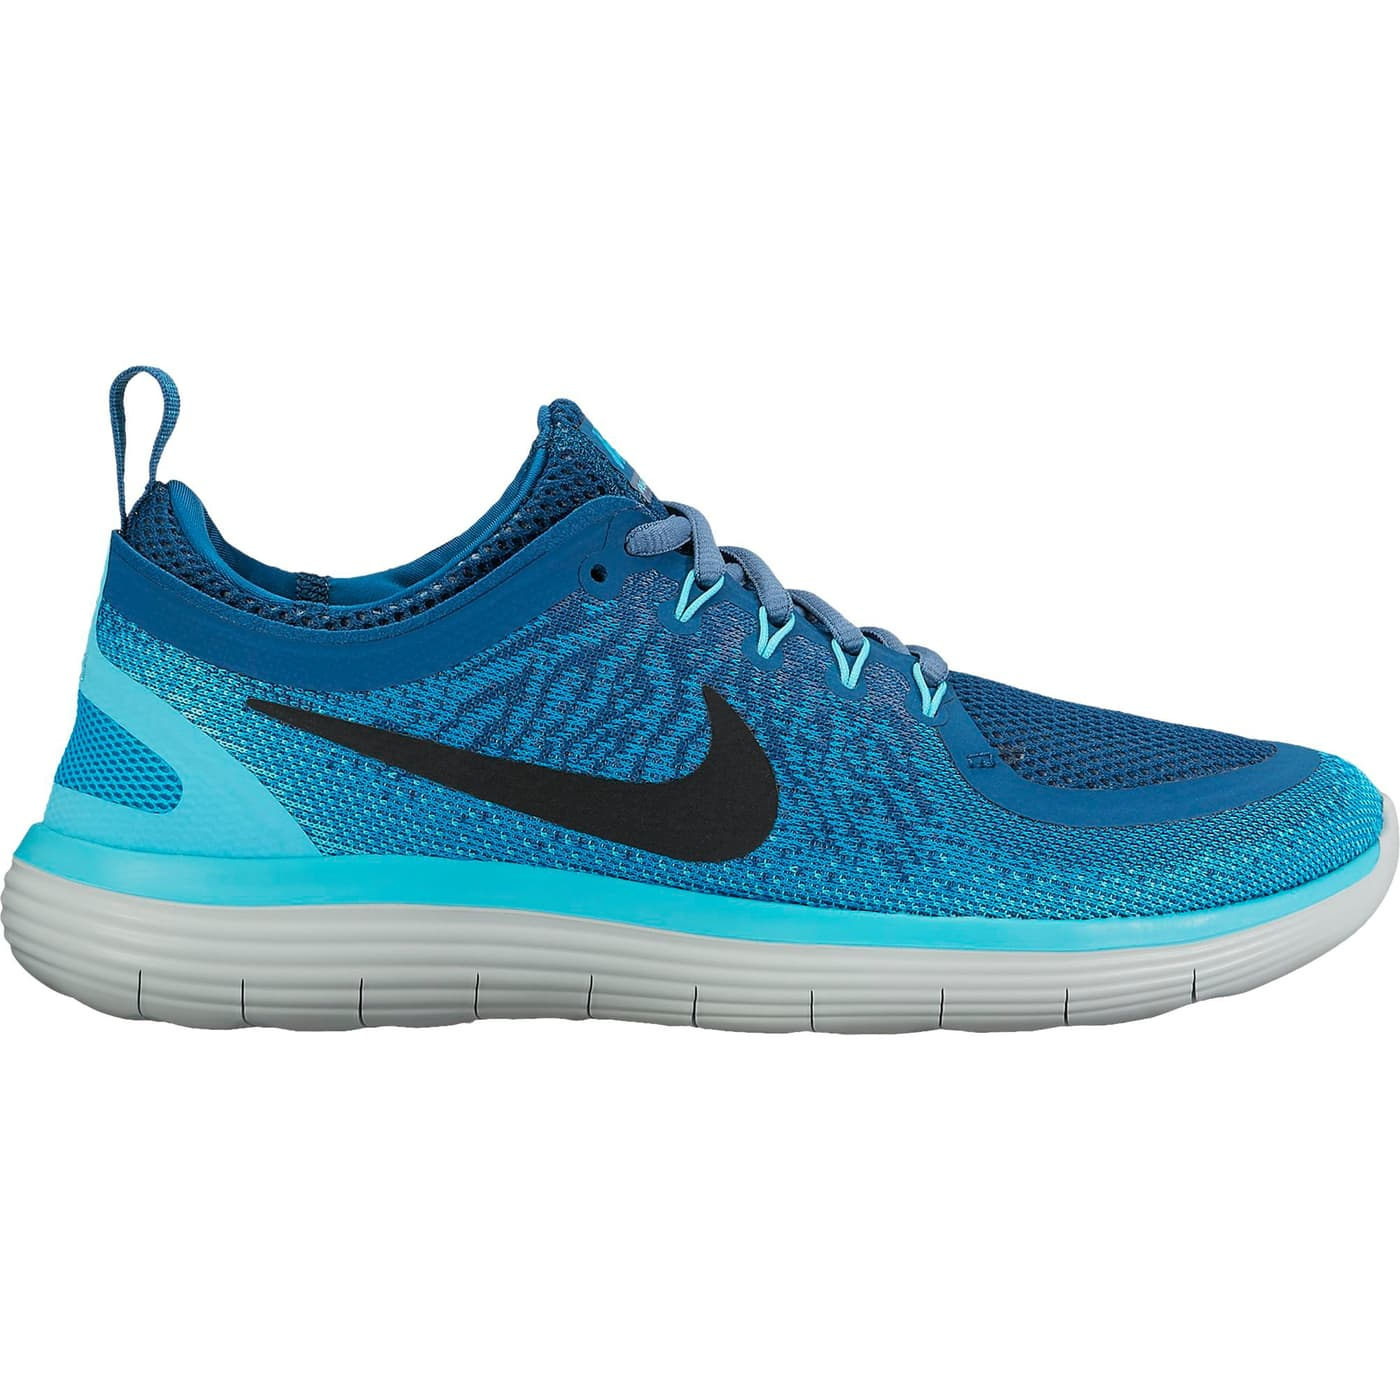 separation shoes 601be cff62 Nike Free Run Distance 2 Chaussures de course pour femme ...